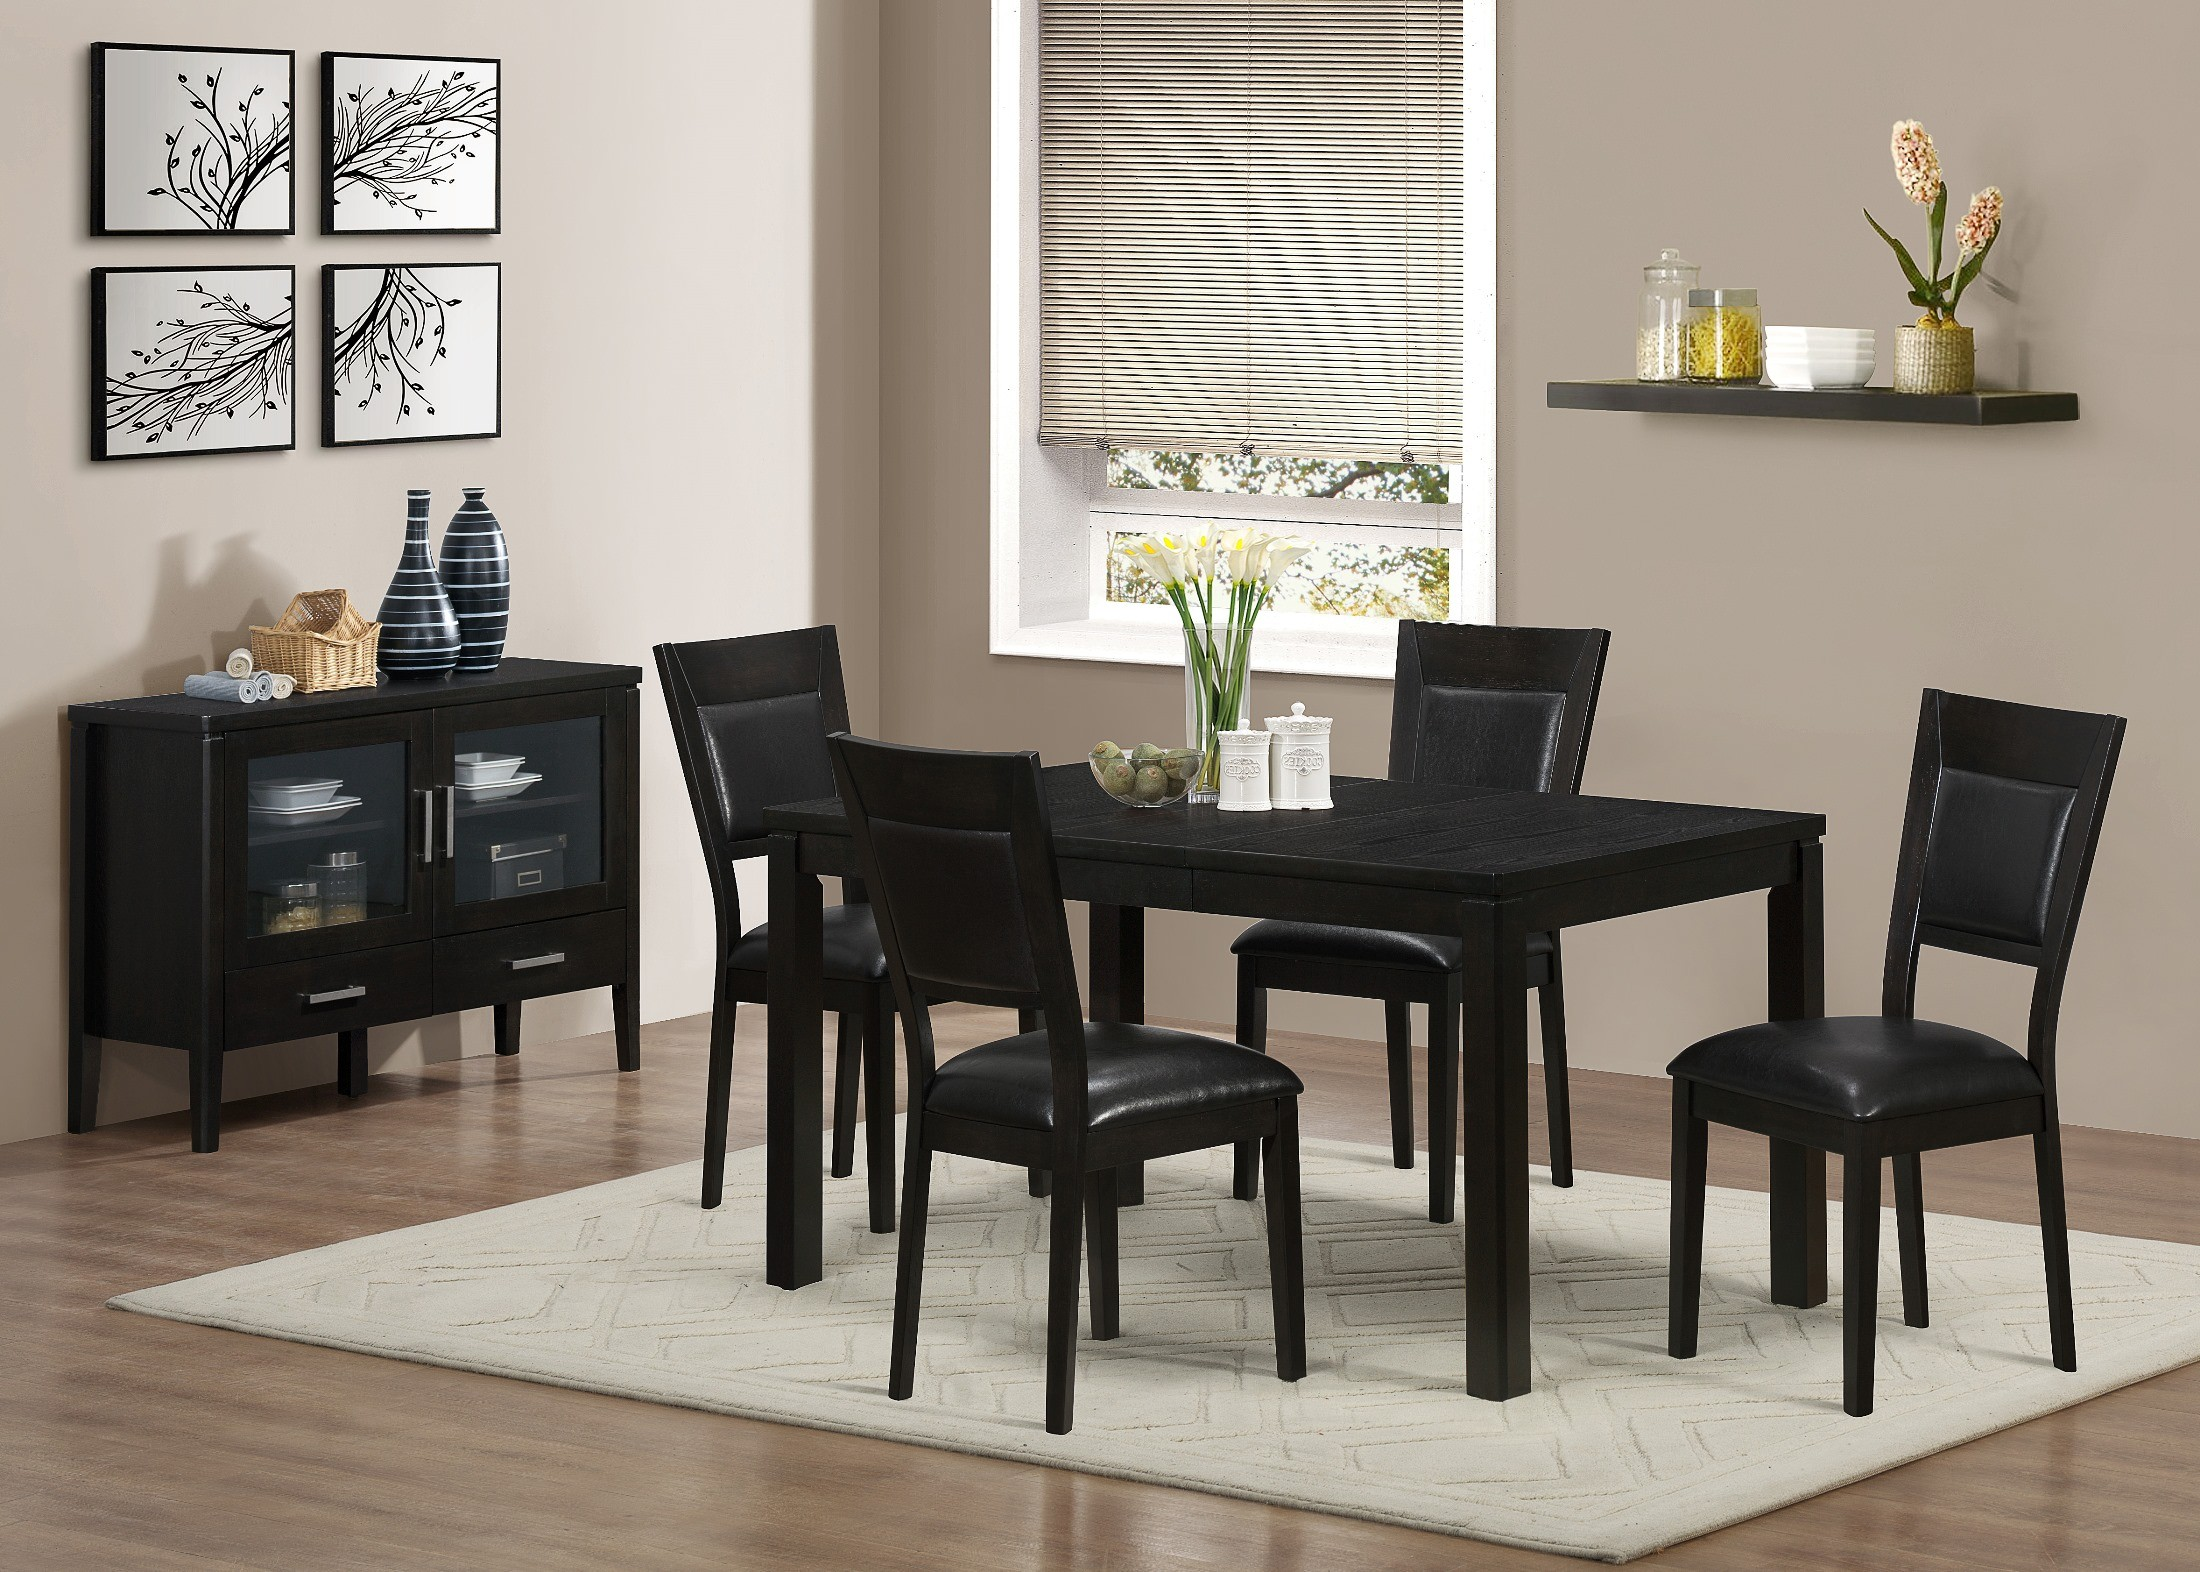 1490 cappuccino ash veneer extendable dining room set 1490 monarch - Extending dining room sets ...